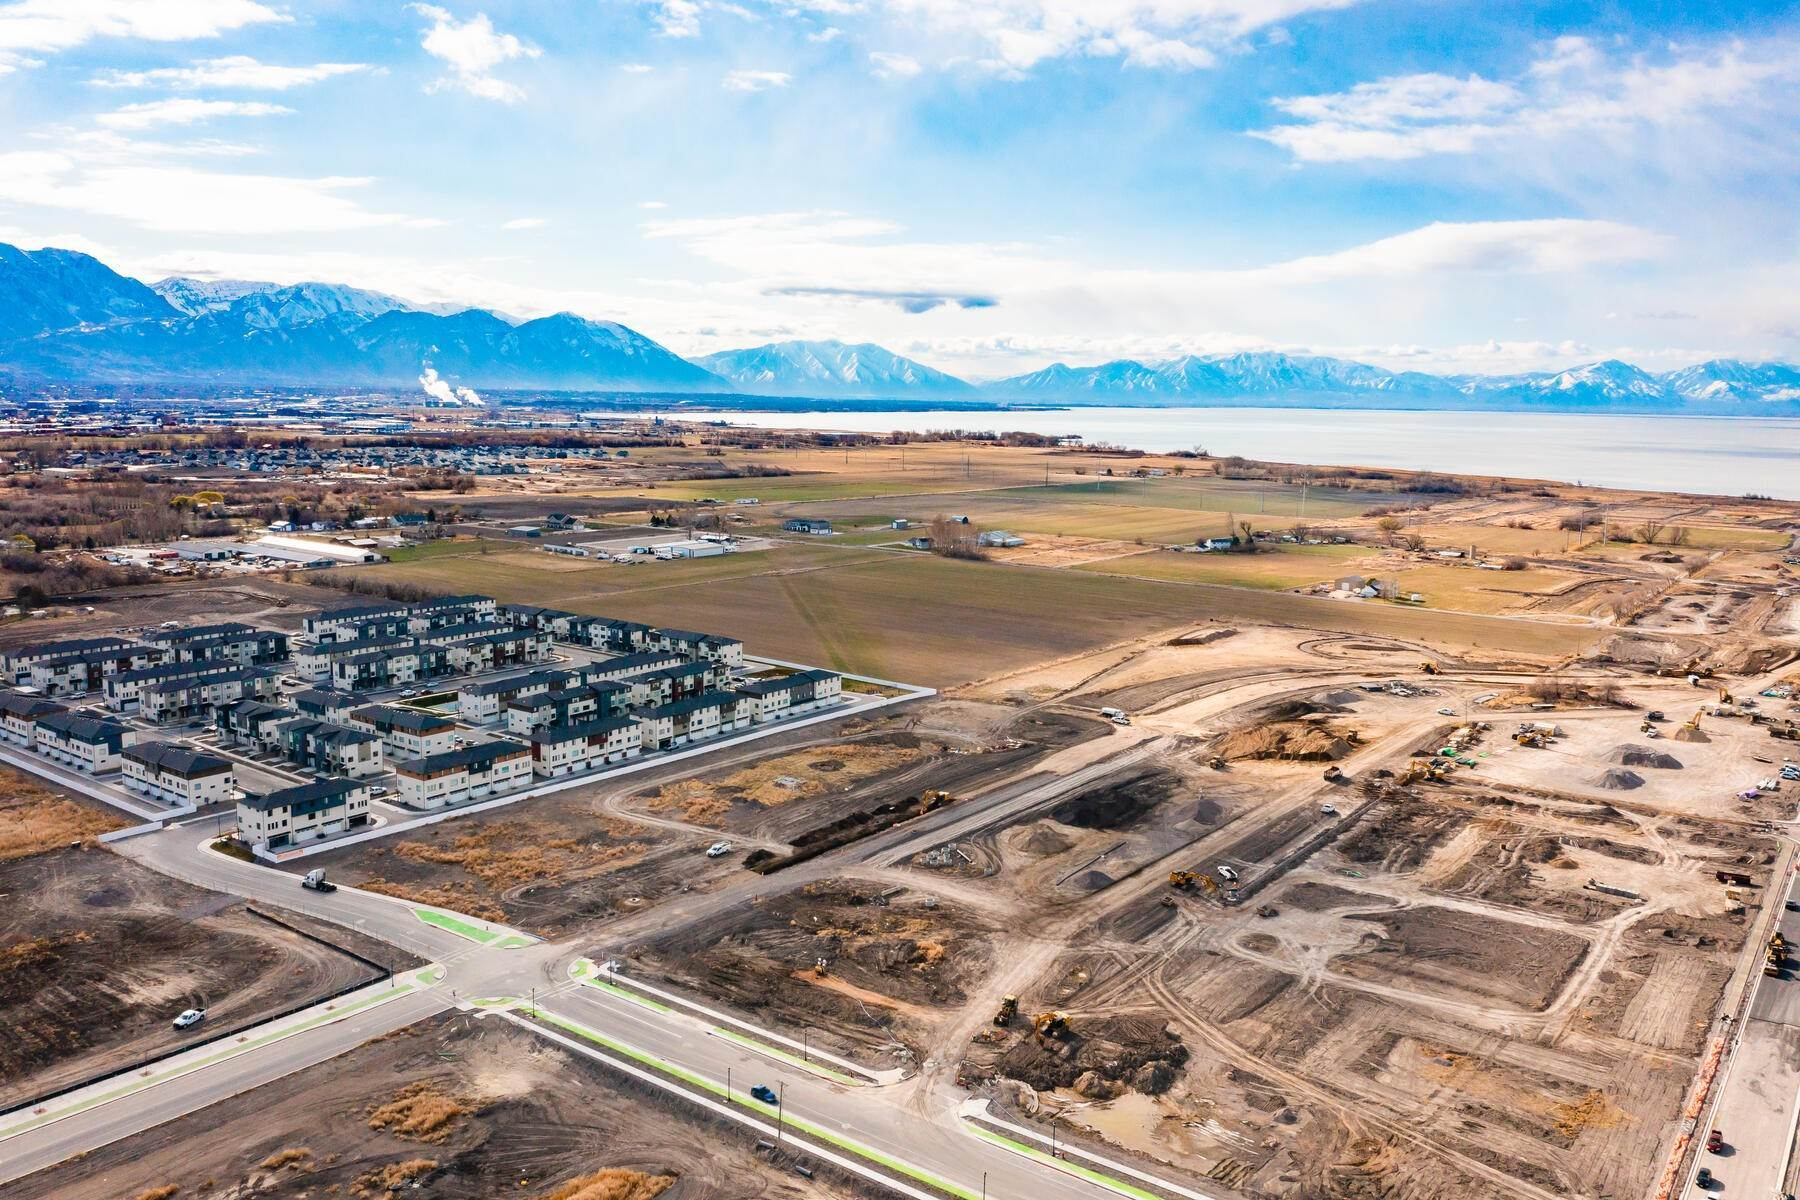 4. Land for Sale at Rare Development Opportunity! Prime American Fork Land Approved for 320 Condos! Lots 4K,3C,1G,2F American Fork, Utah 84003 United States